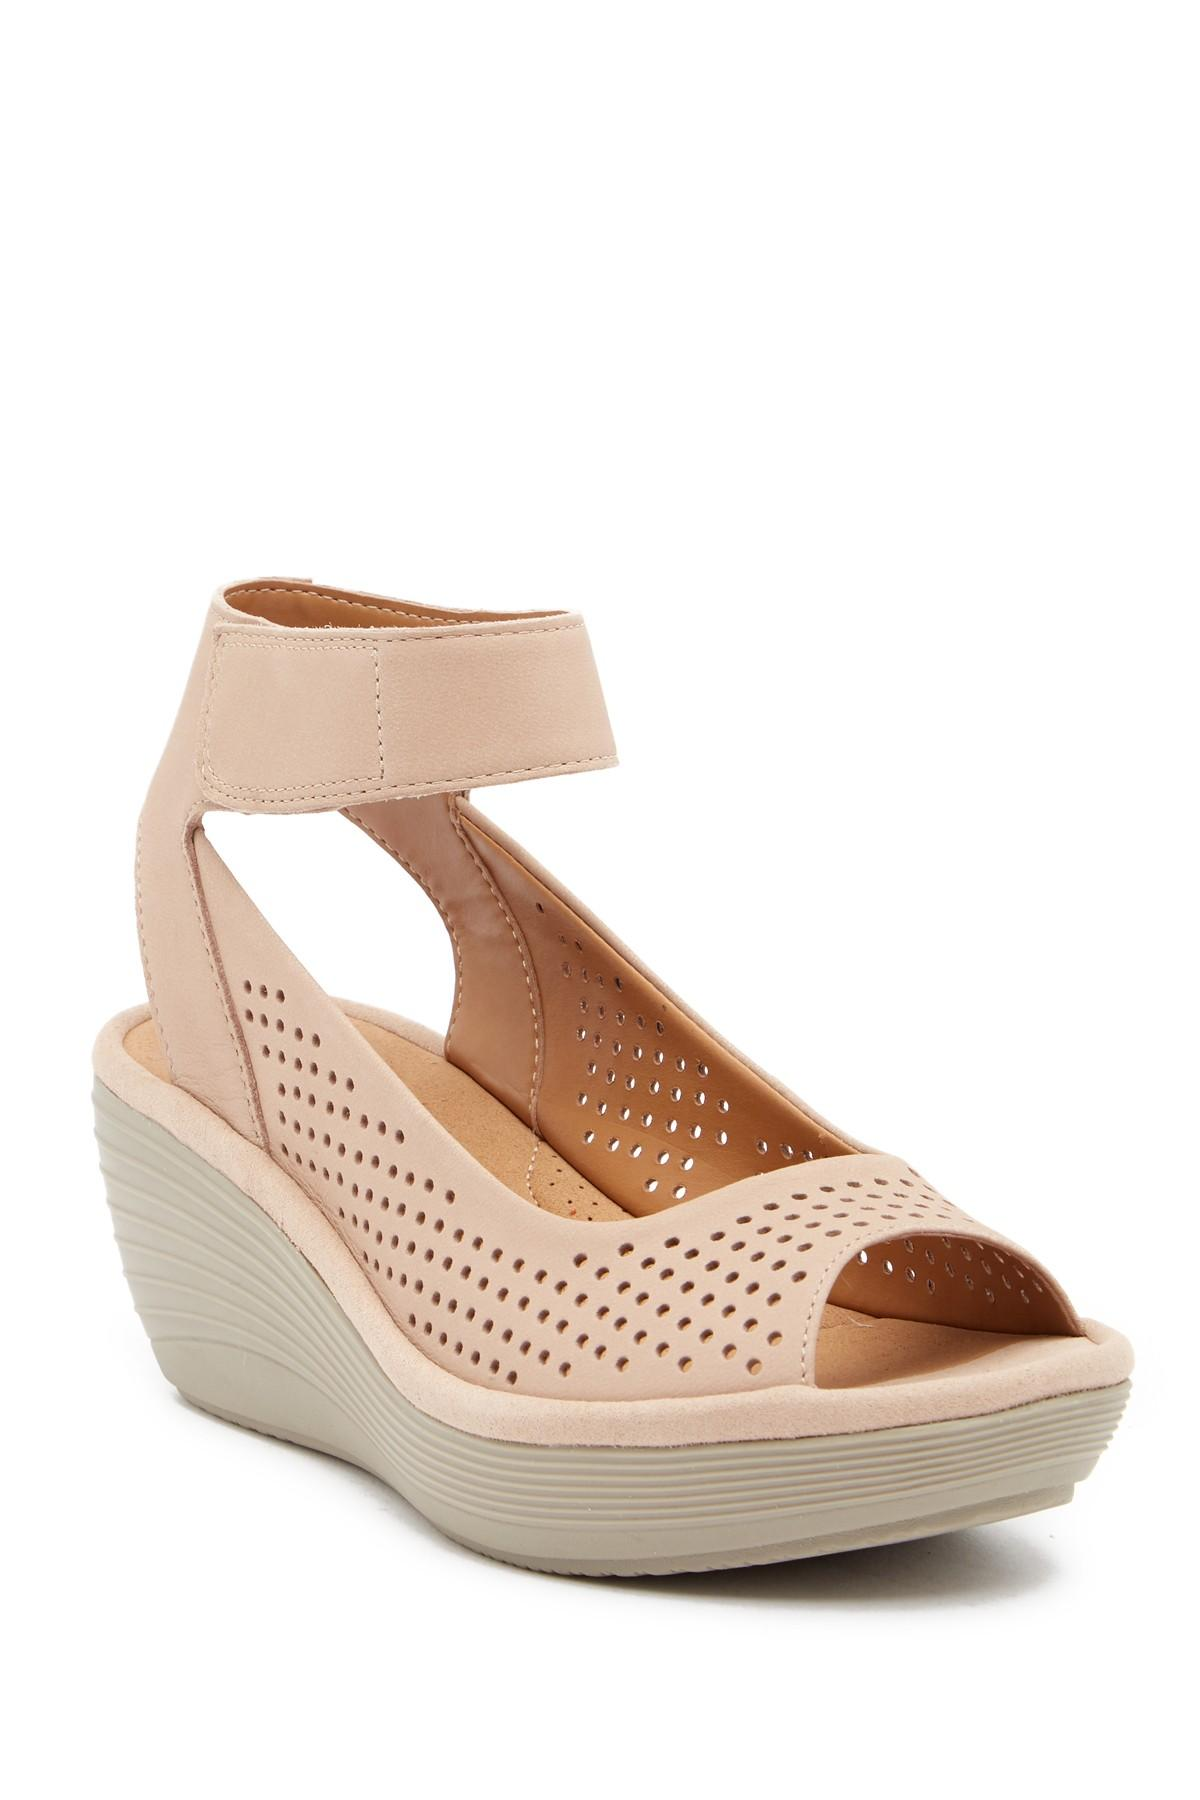 facd0c54be0 Lyst - Clarks Reedly Salene Wedge Sandals - Save 38%